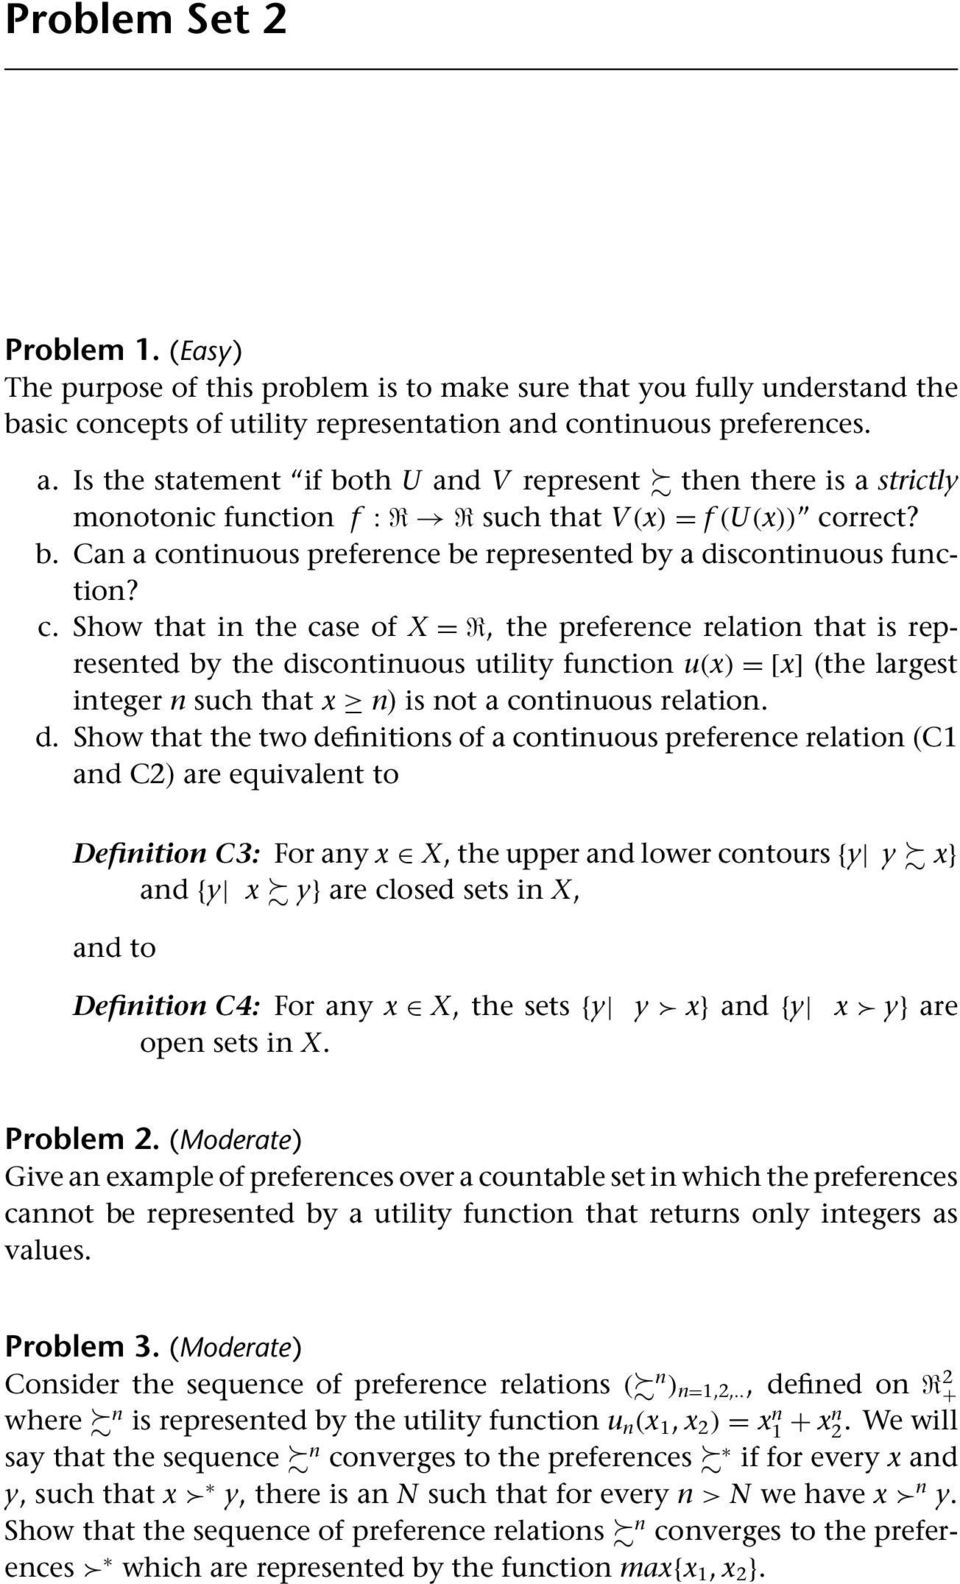 d continuous preferences. a. Is the statement if both U and V represent then there is a strictly monotonic function f :R R such that V(x) = f (U(x)) correct? b. Can a continuous preference be represented by a discontinuous function?